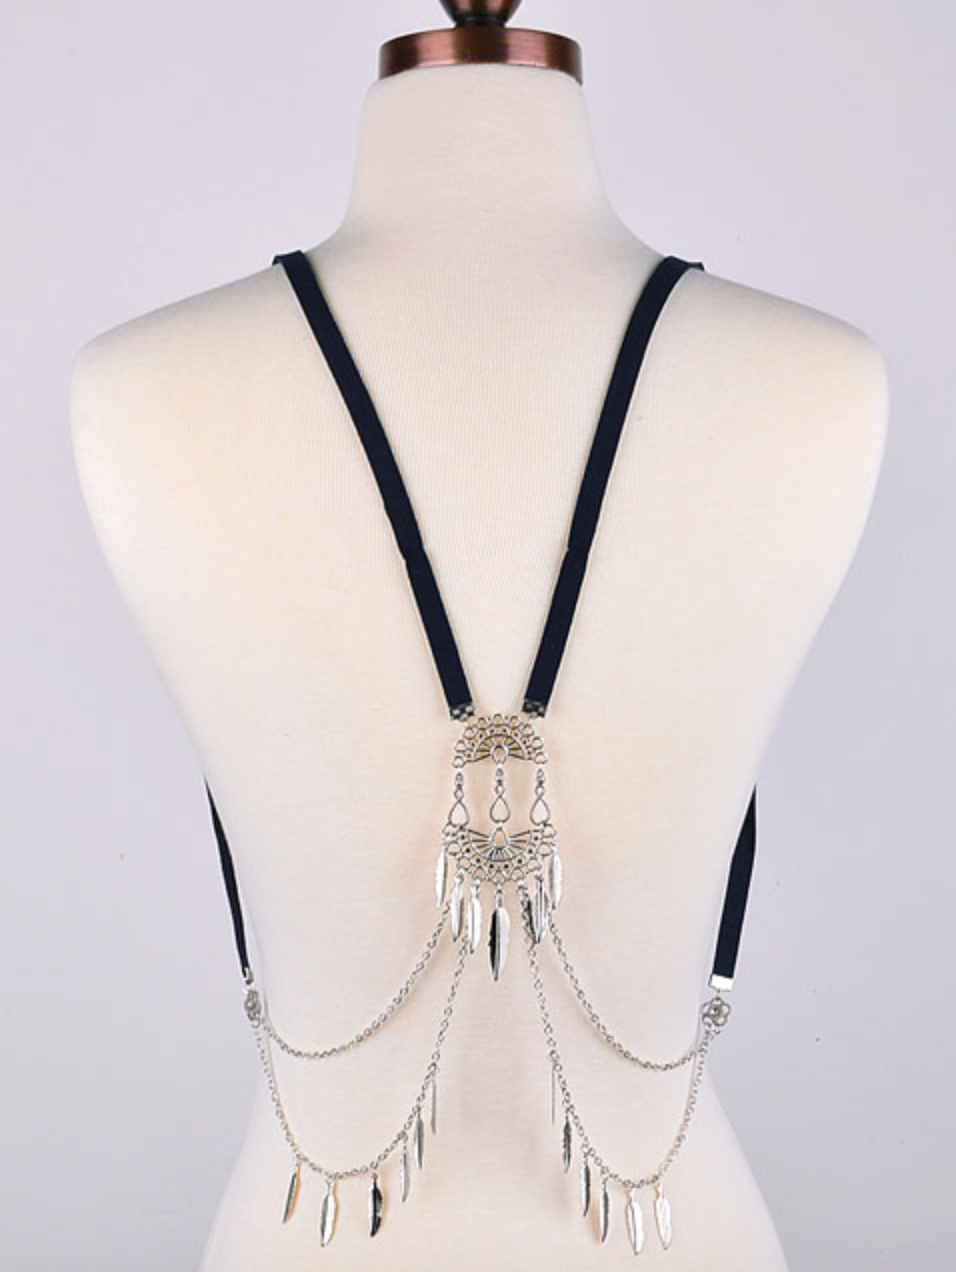 Zella Stone: Body Jewelry - Silver Body Harness - Fame